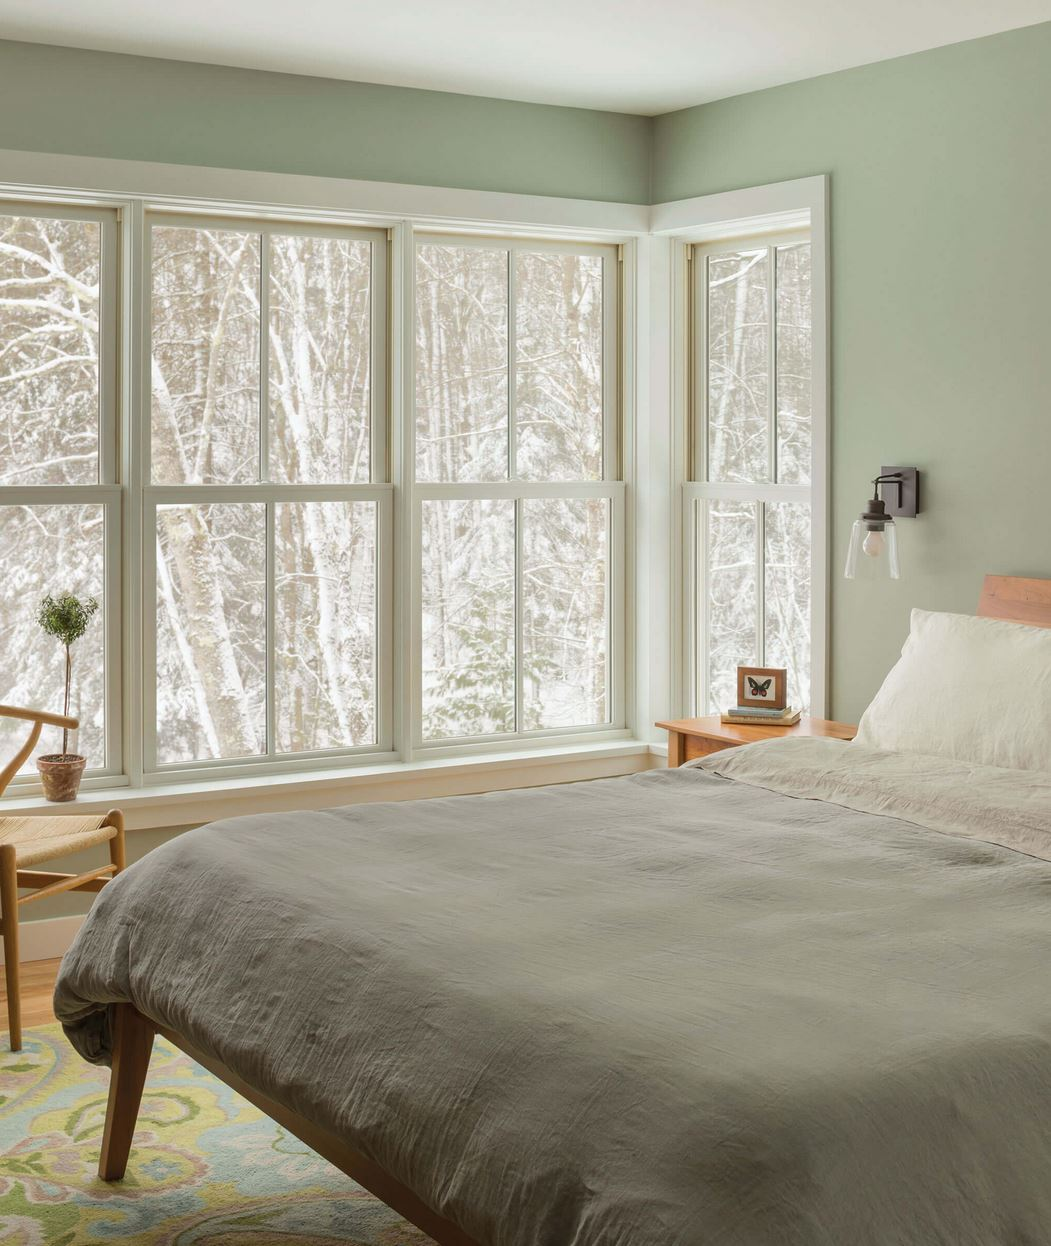 Bedroom in residential home with large white wood windows installed almost floor to ceiling